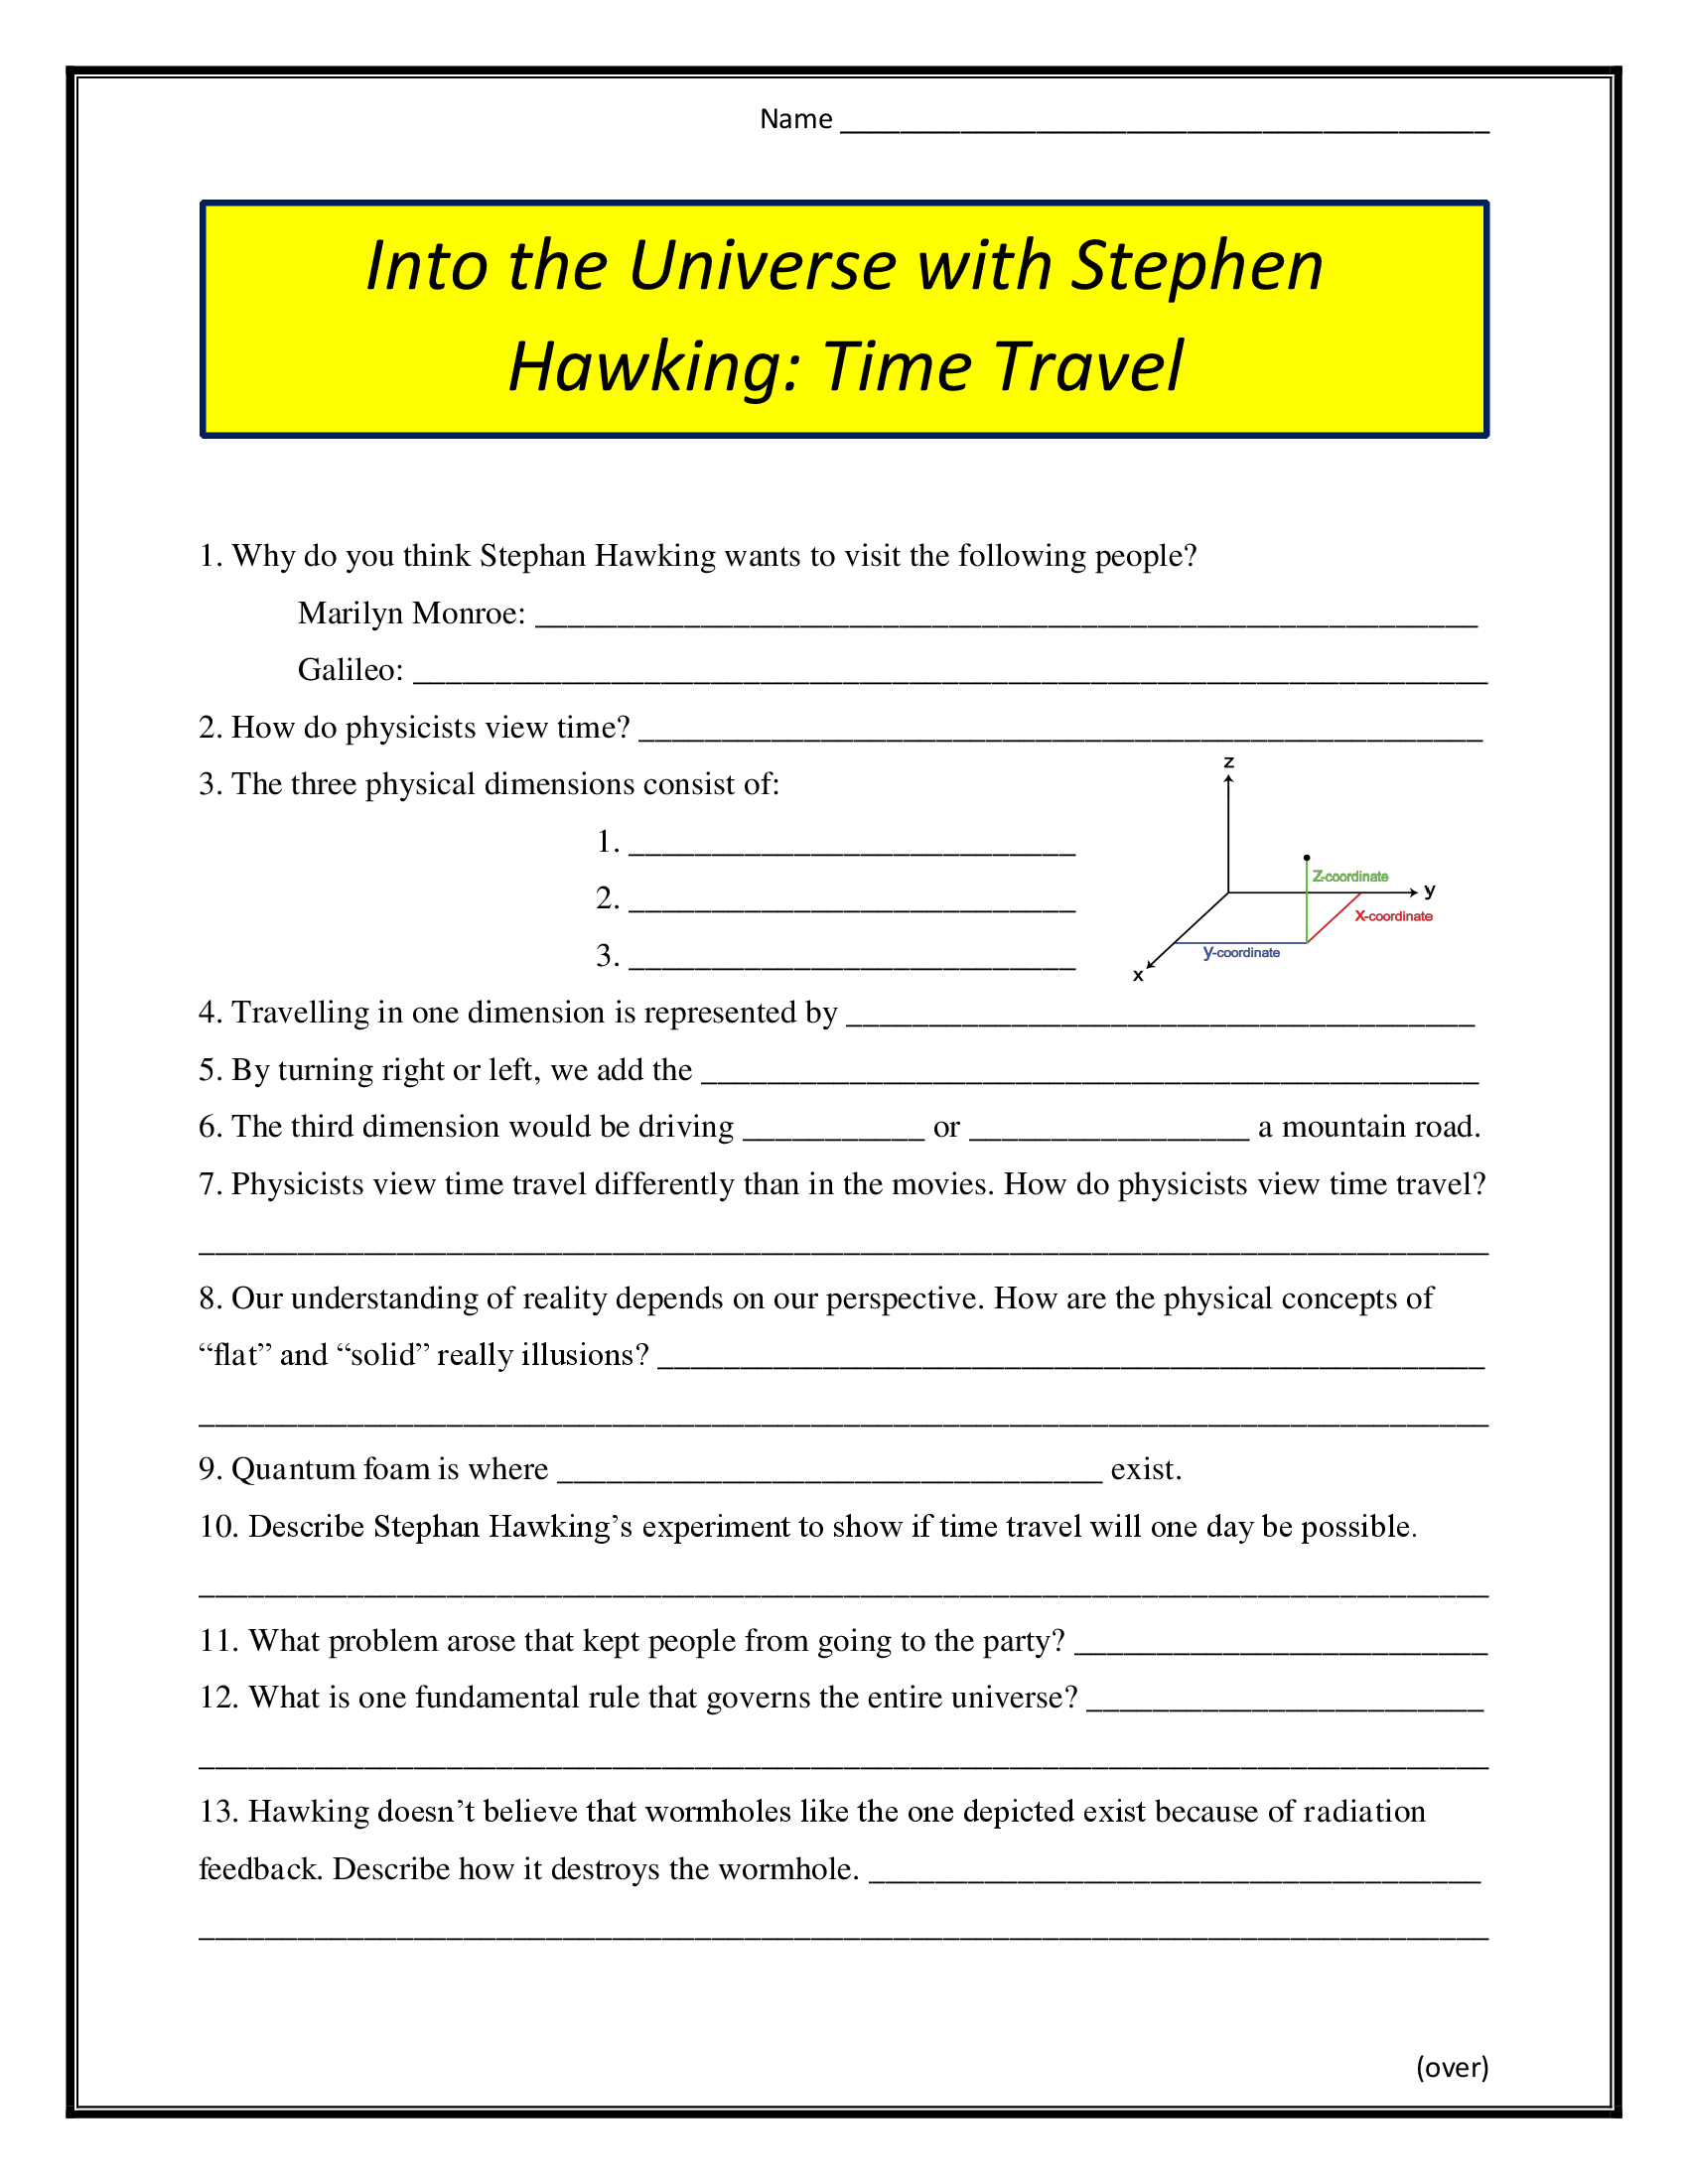 Into The Universe With Stephen Hawking Time Travel